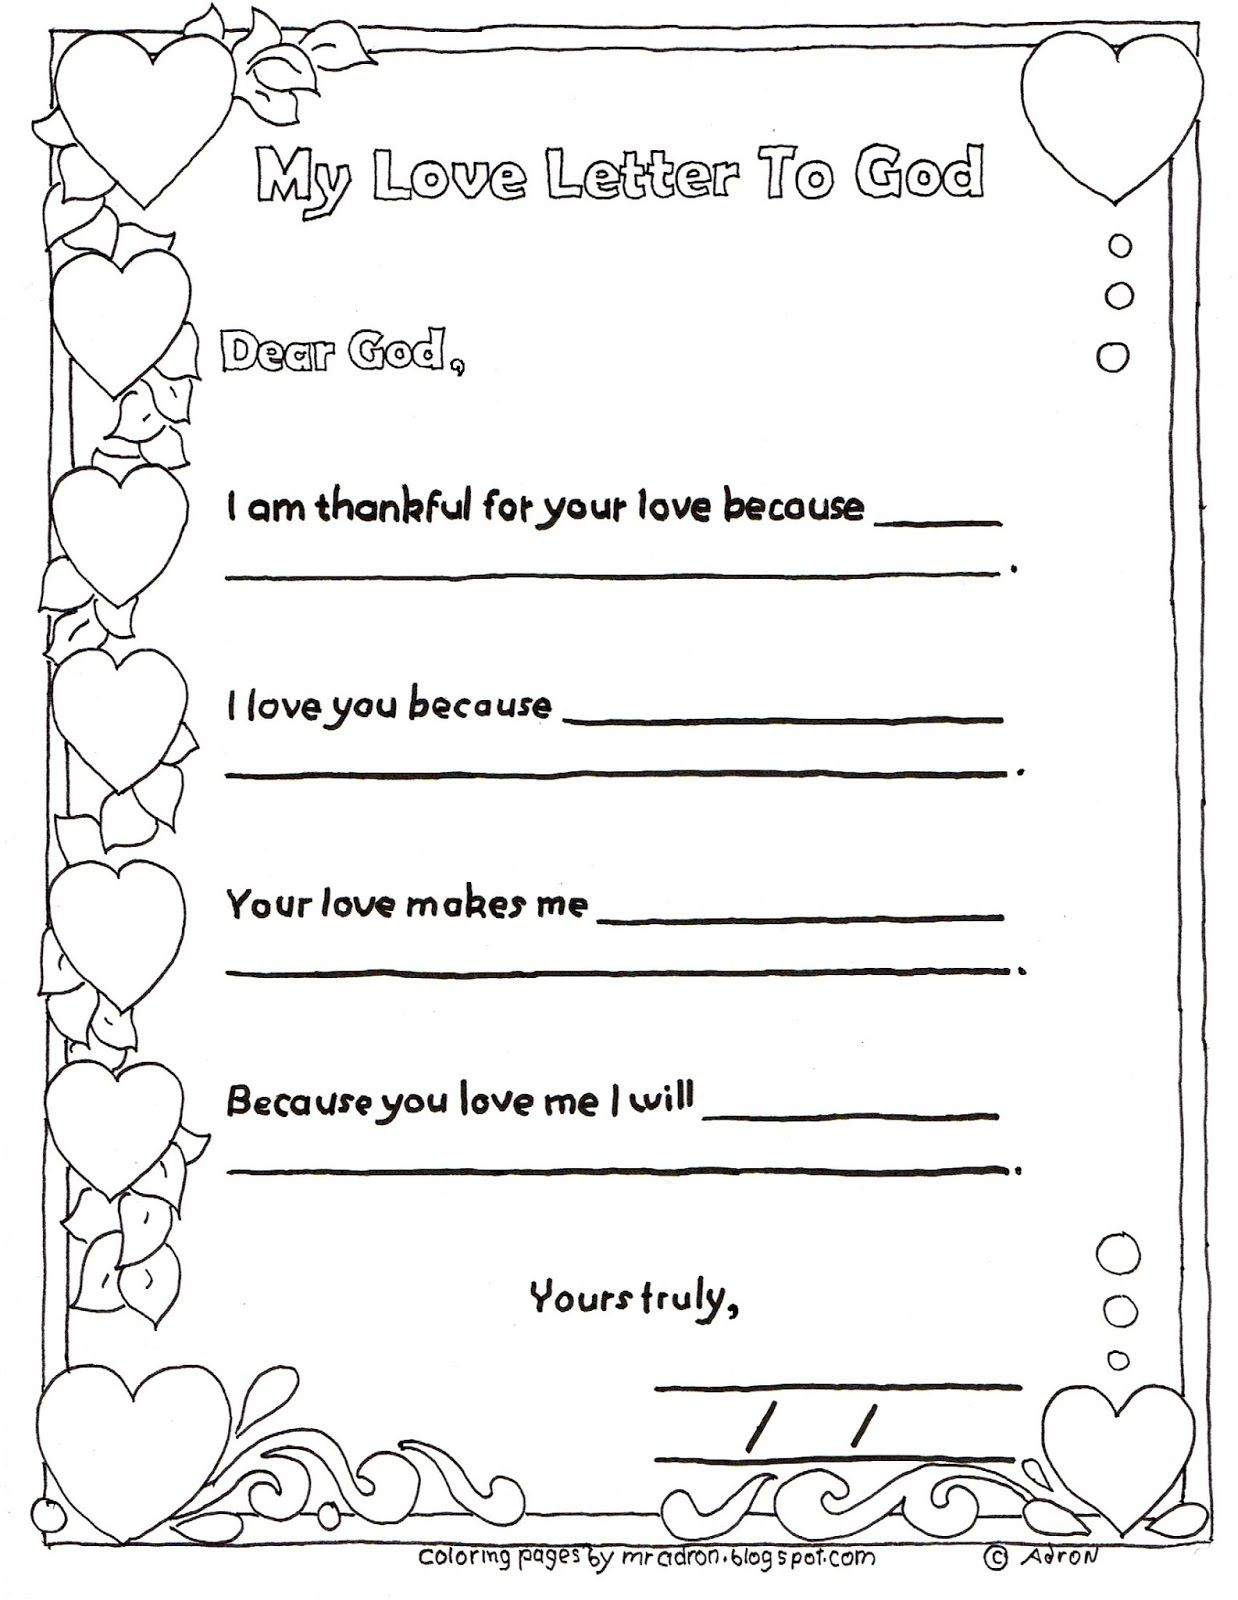 A Child S Love Letter To God Activity And Printable